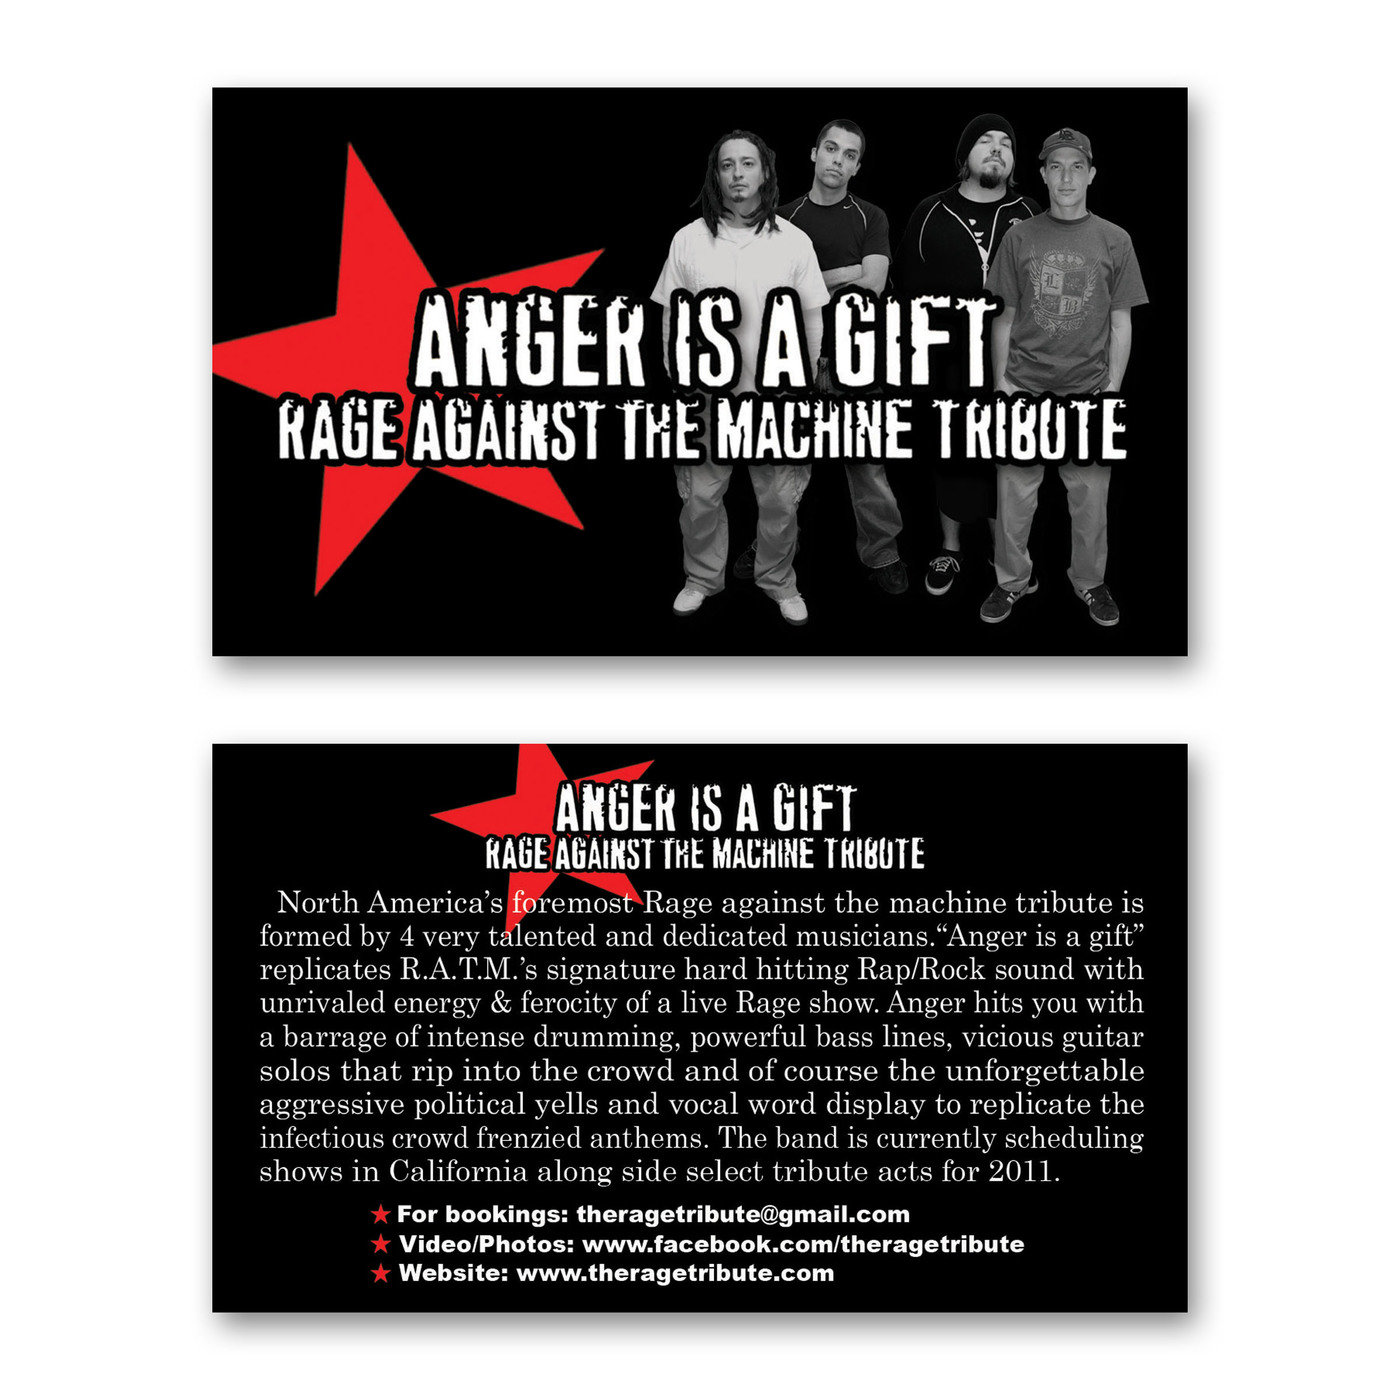 The Rage Tribute Band Anger is a gift by Johnny Mar at Coroflot.com